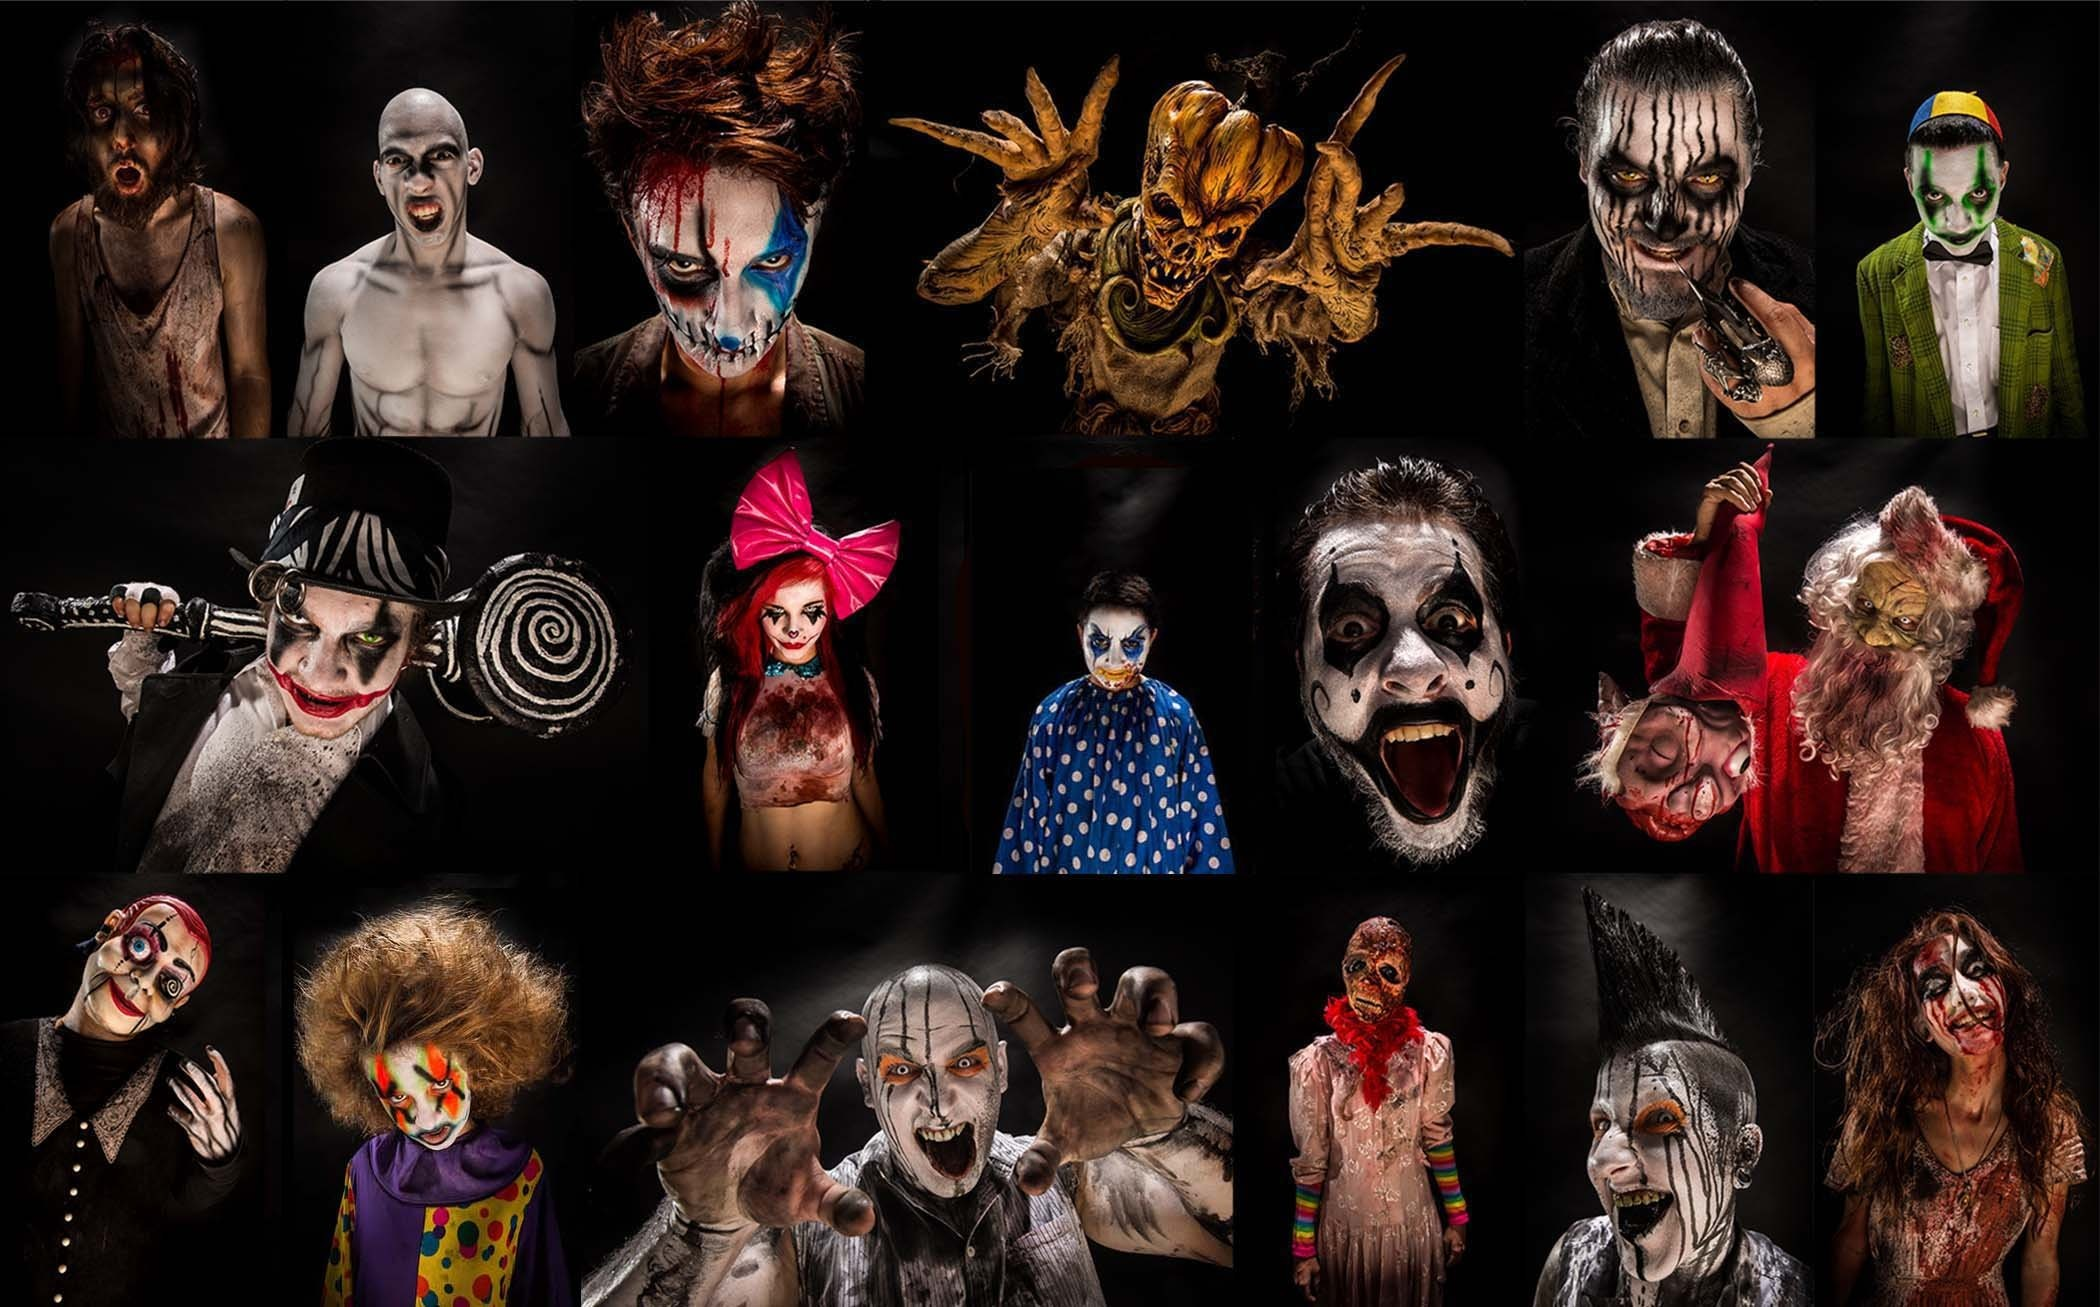 2100x1307 Holiday - Halloween Holiday Collage Scary Evil Creepy Clown Wallpaper